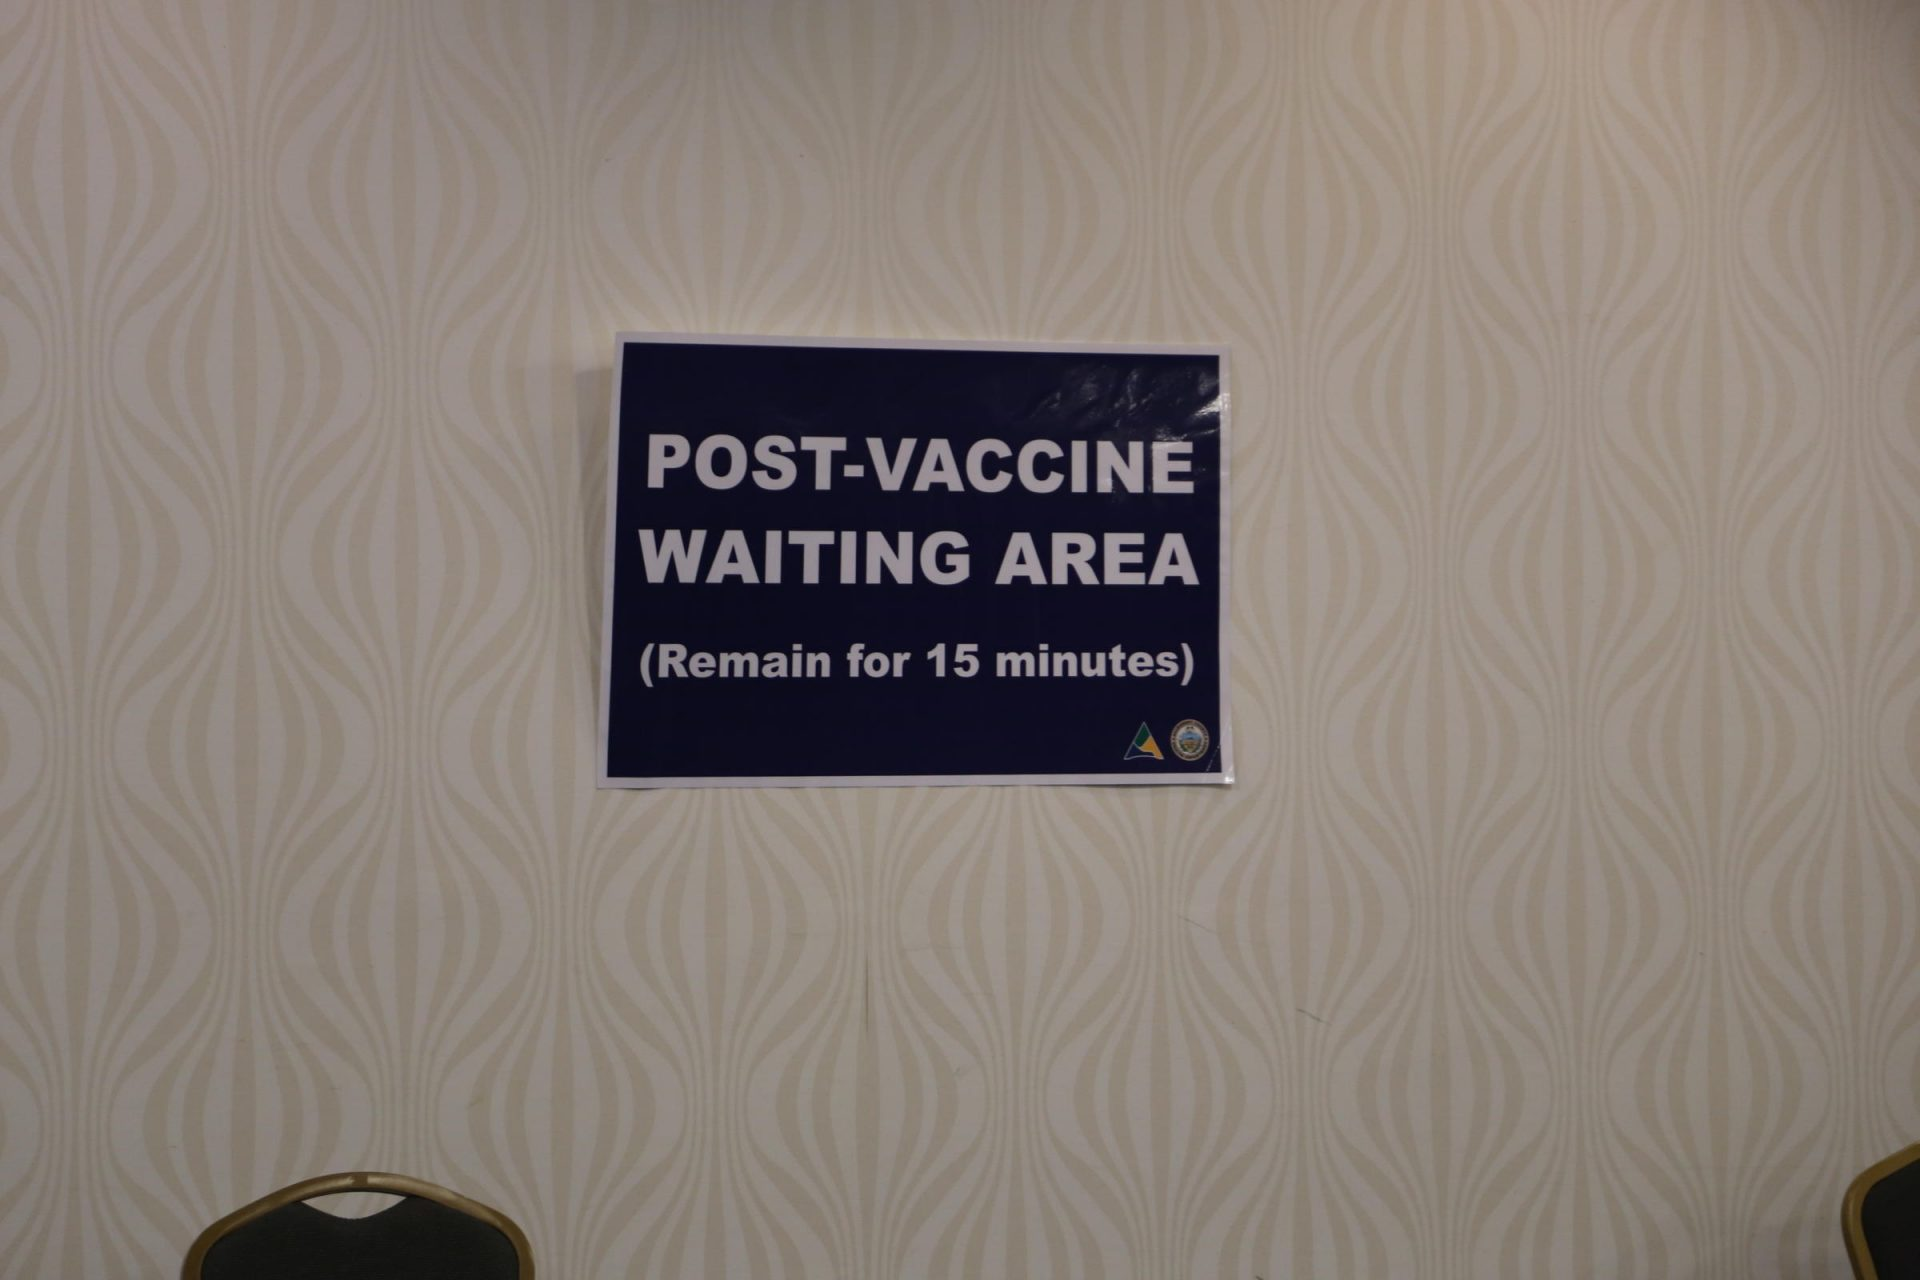 A sign marks the waiting area for people who received a COVID-19 vaccine. The 15-minute waiting period is a precaution because some people who received initial doses of the vaccine developed allergic reactions.